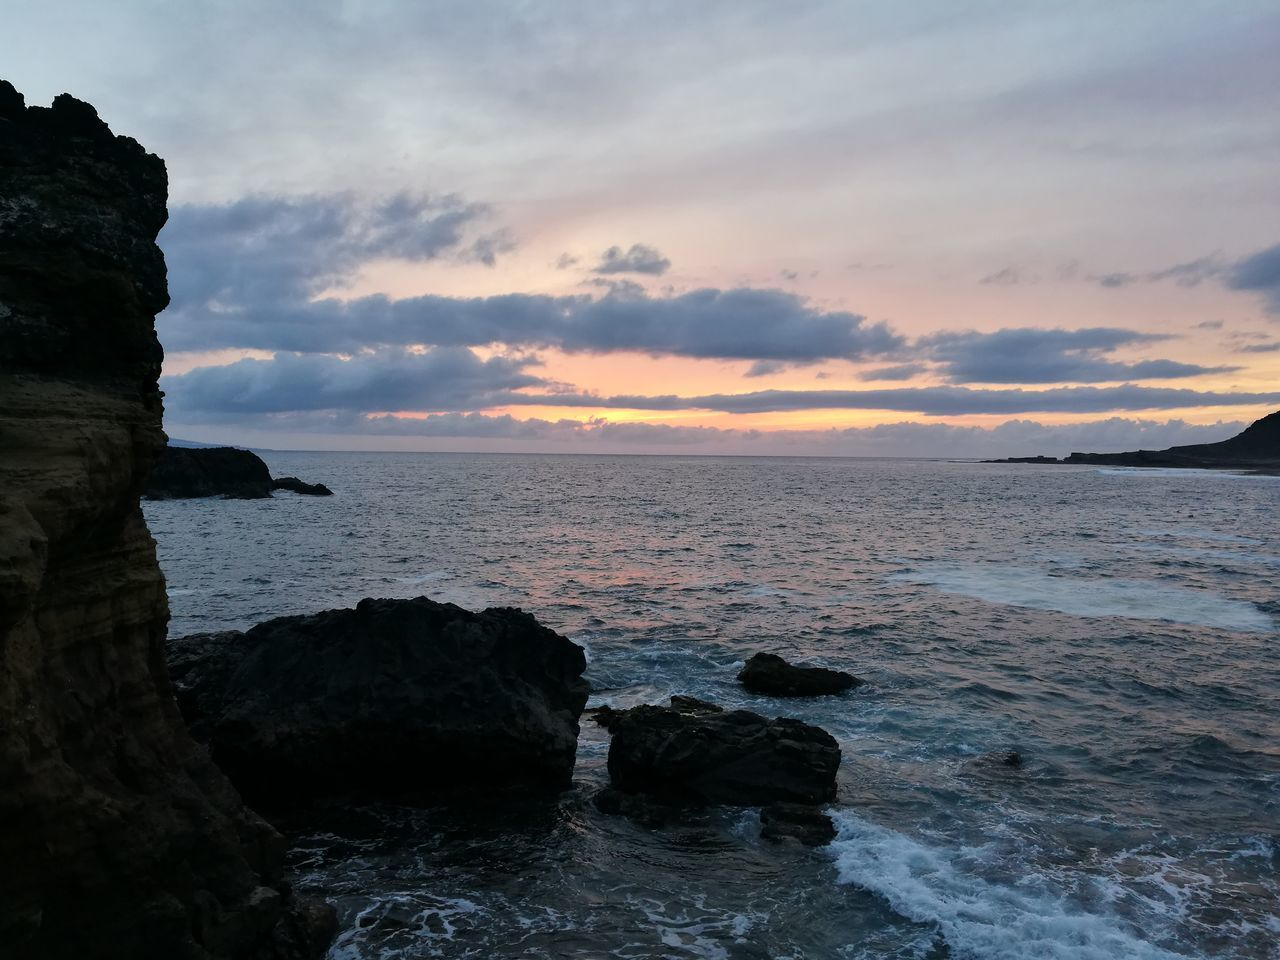 sea, water, nature, beauty in nature, scenics, sunset, rock - object, sky, tranquil scene, tranquility, horizon over water, outdoors, no people, day